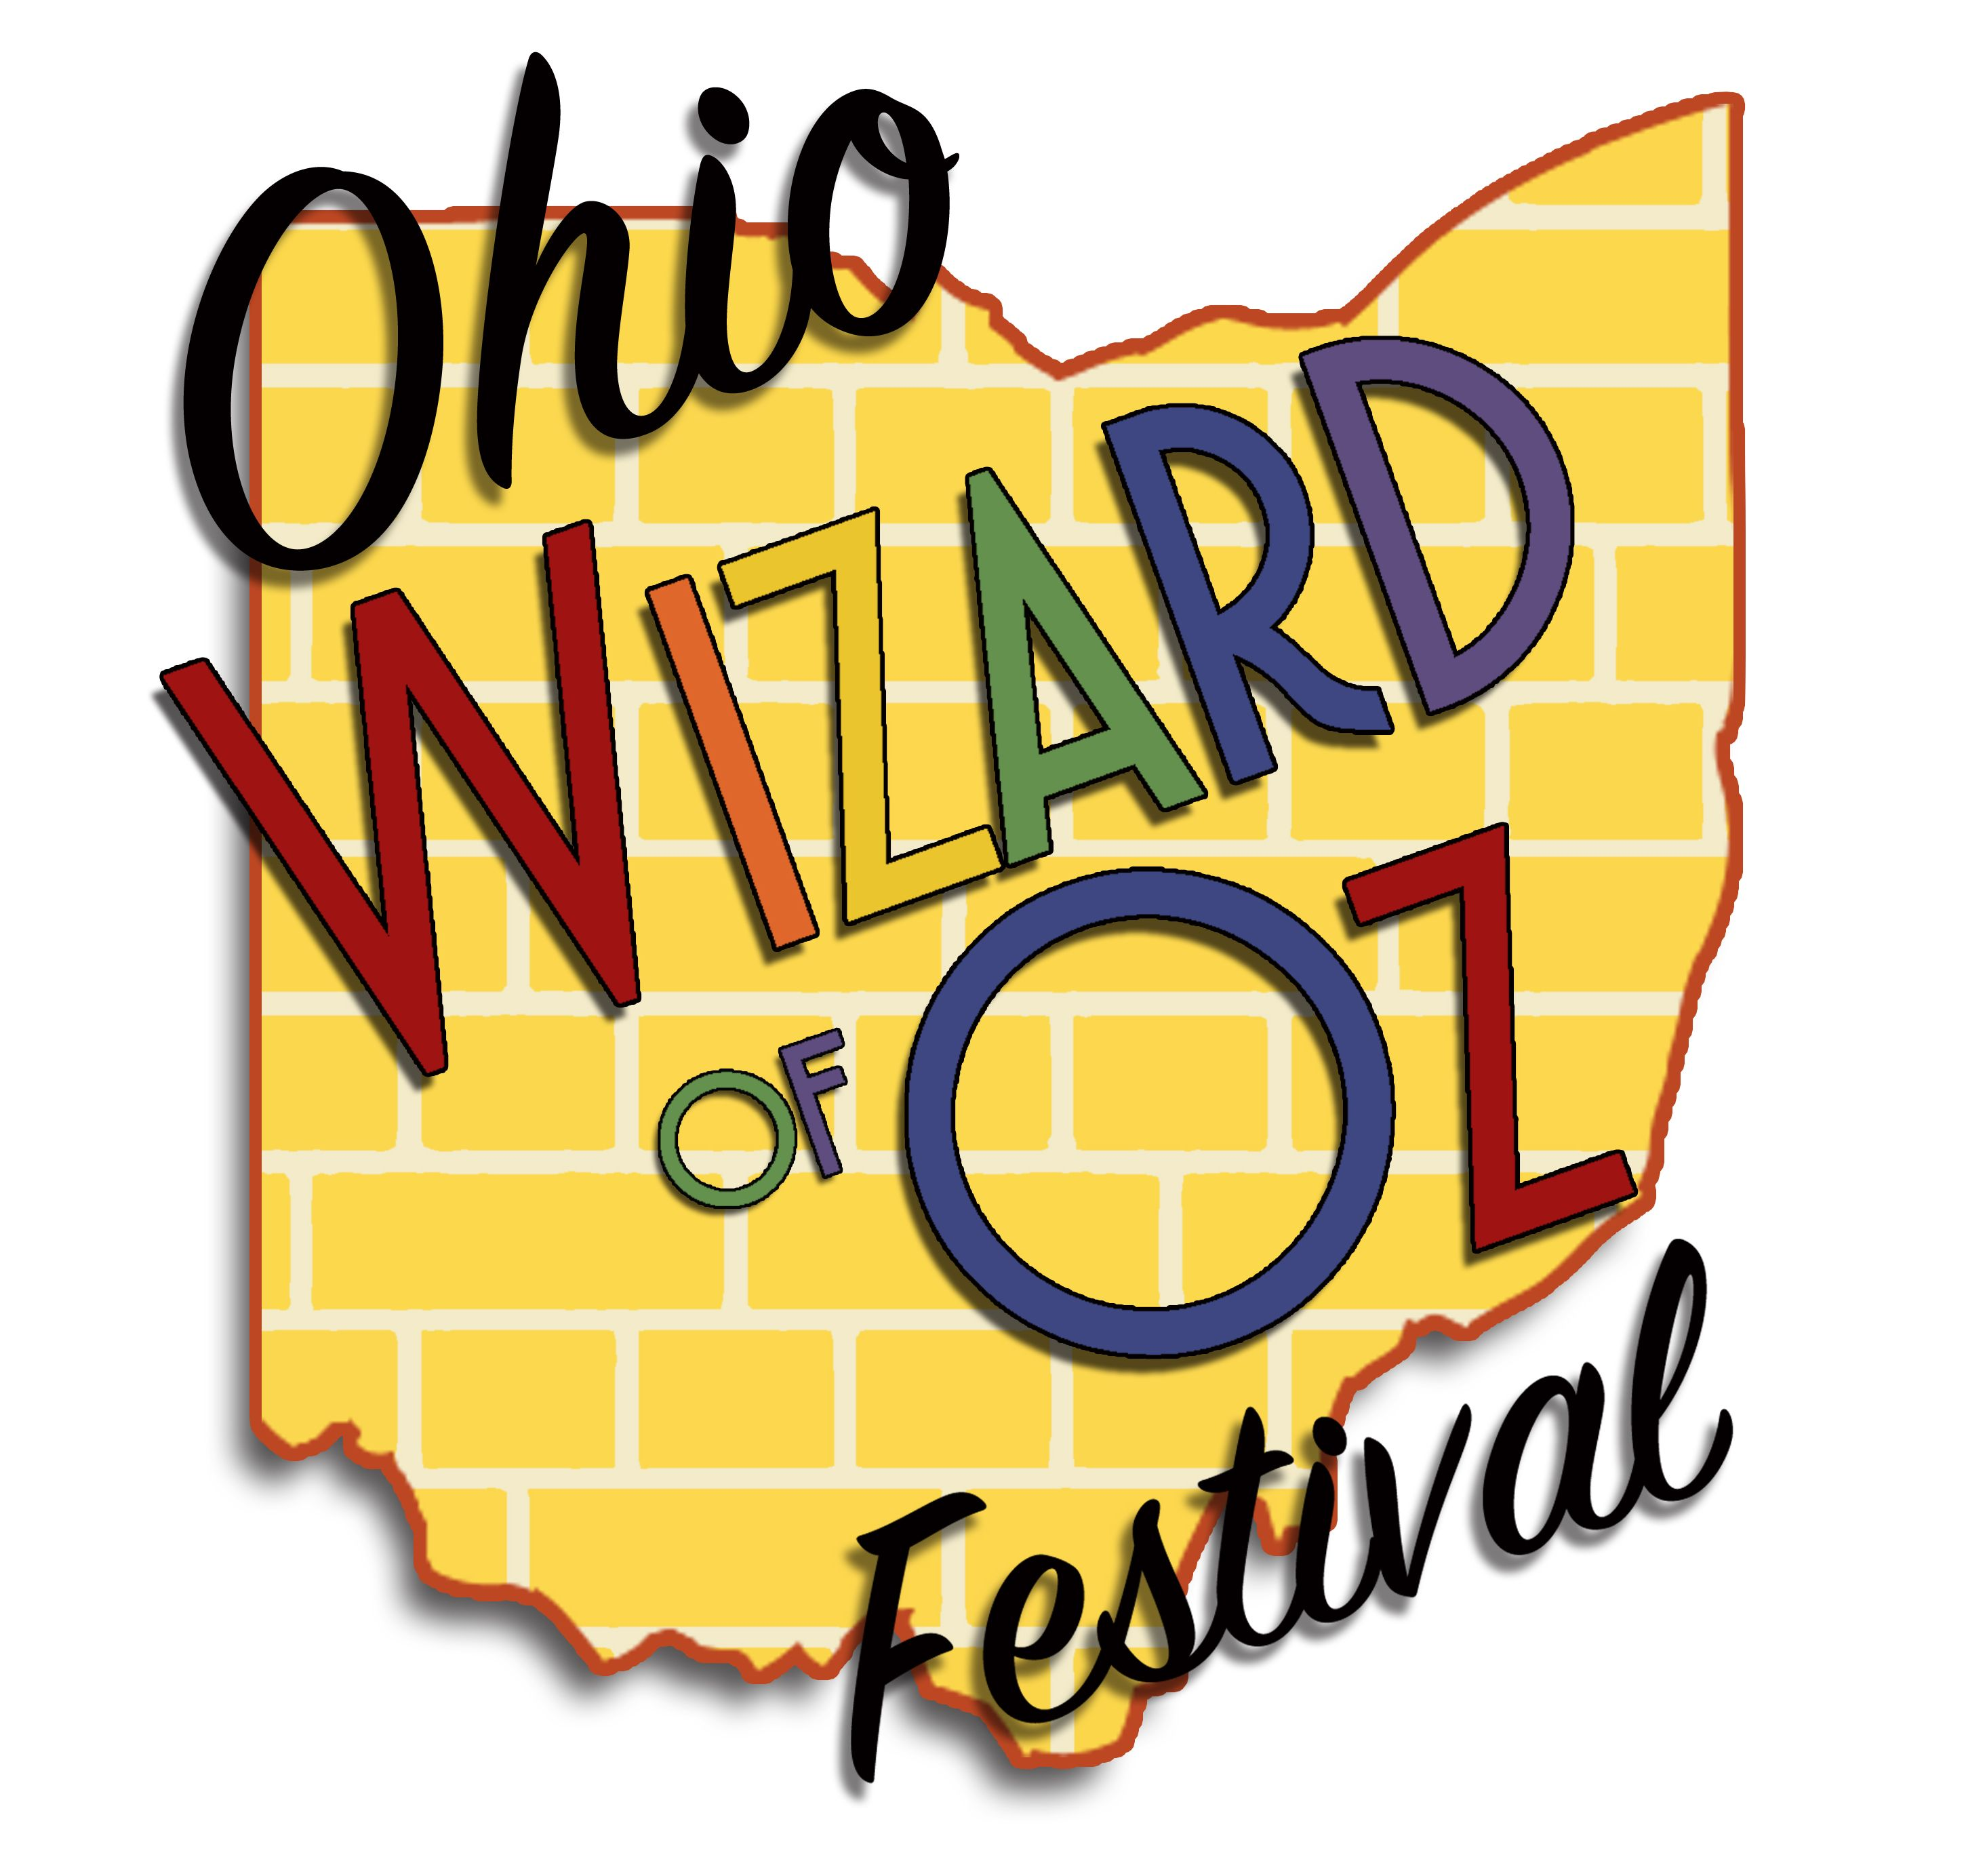 Ohio Wizard of Oz Festival Logo